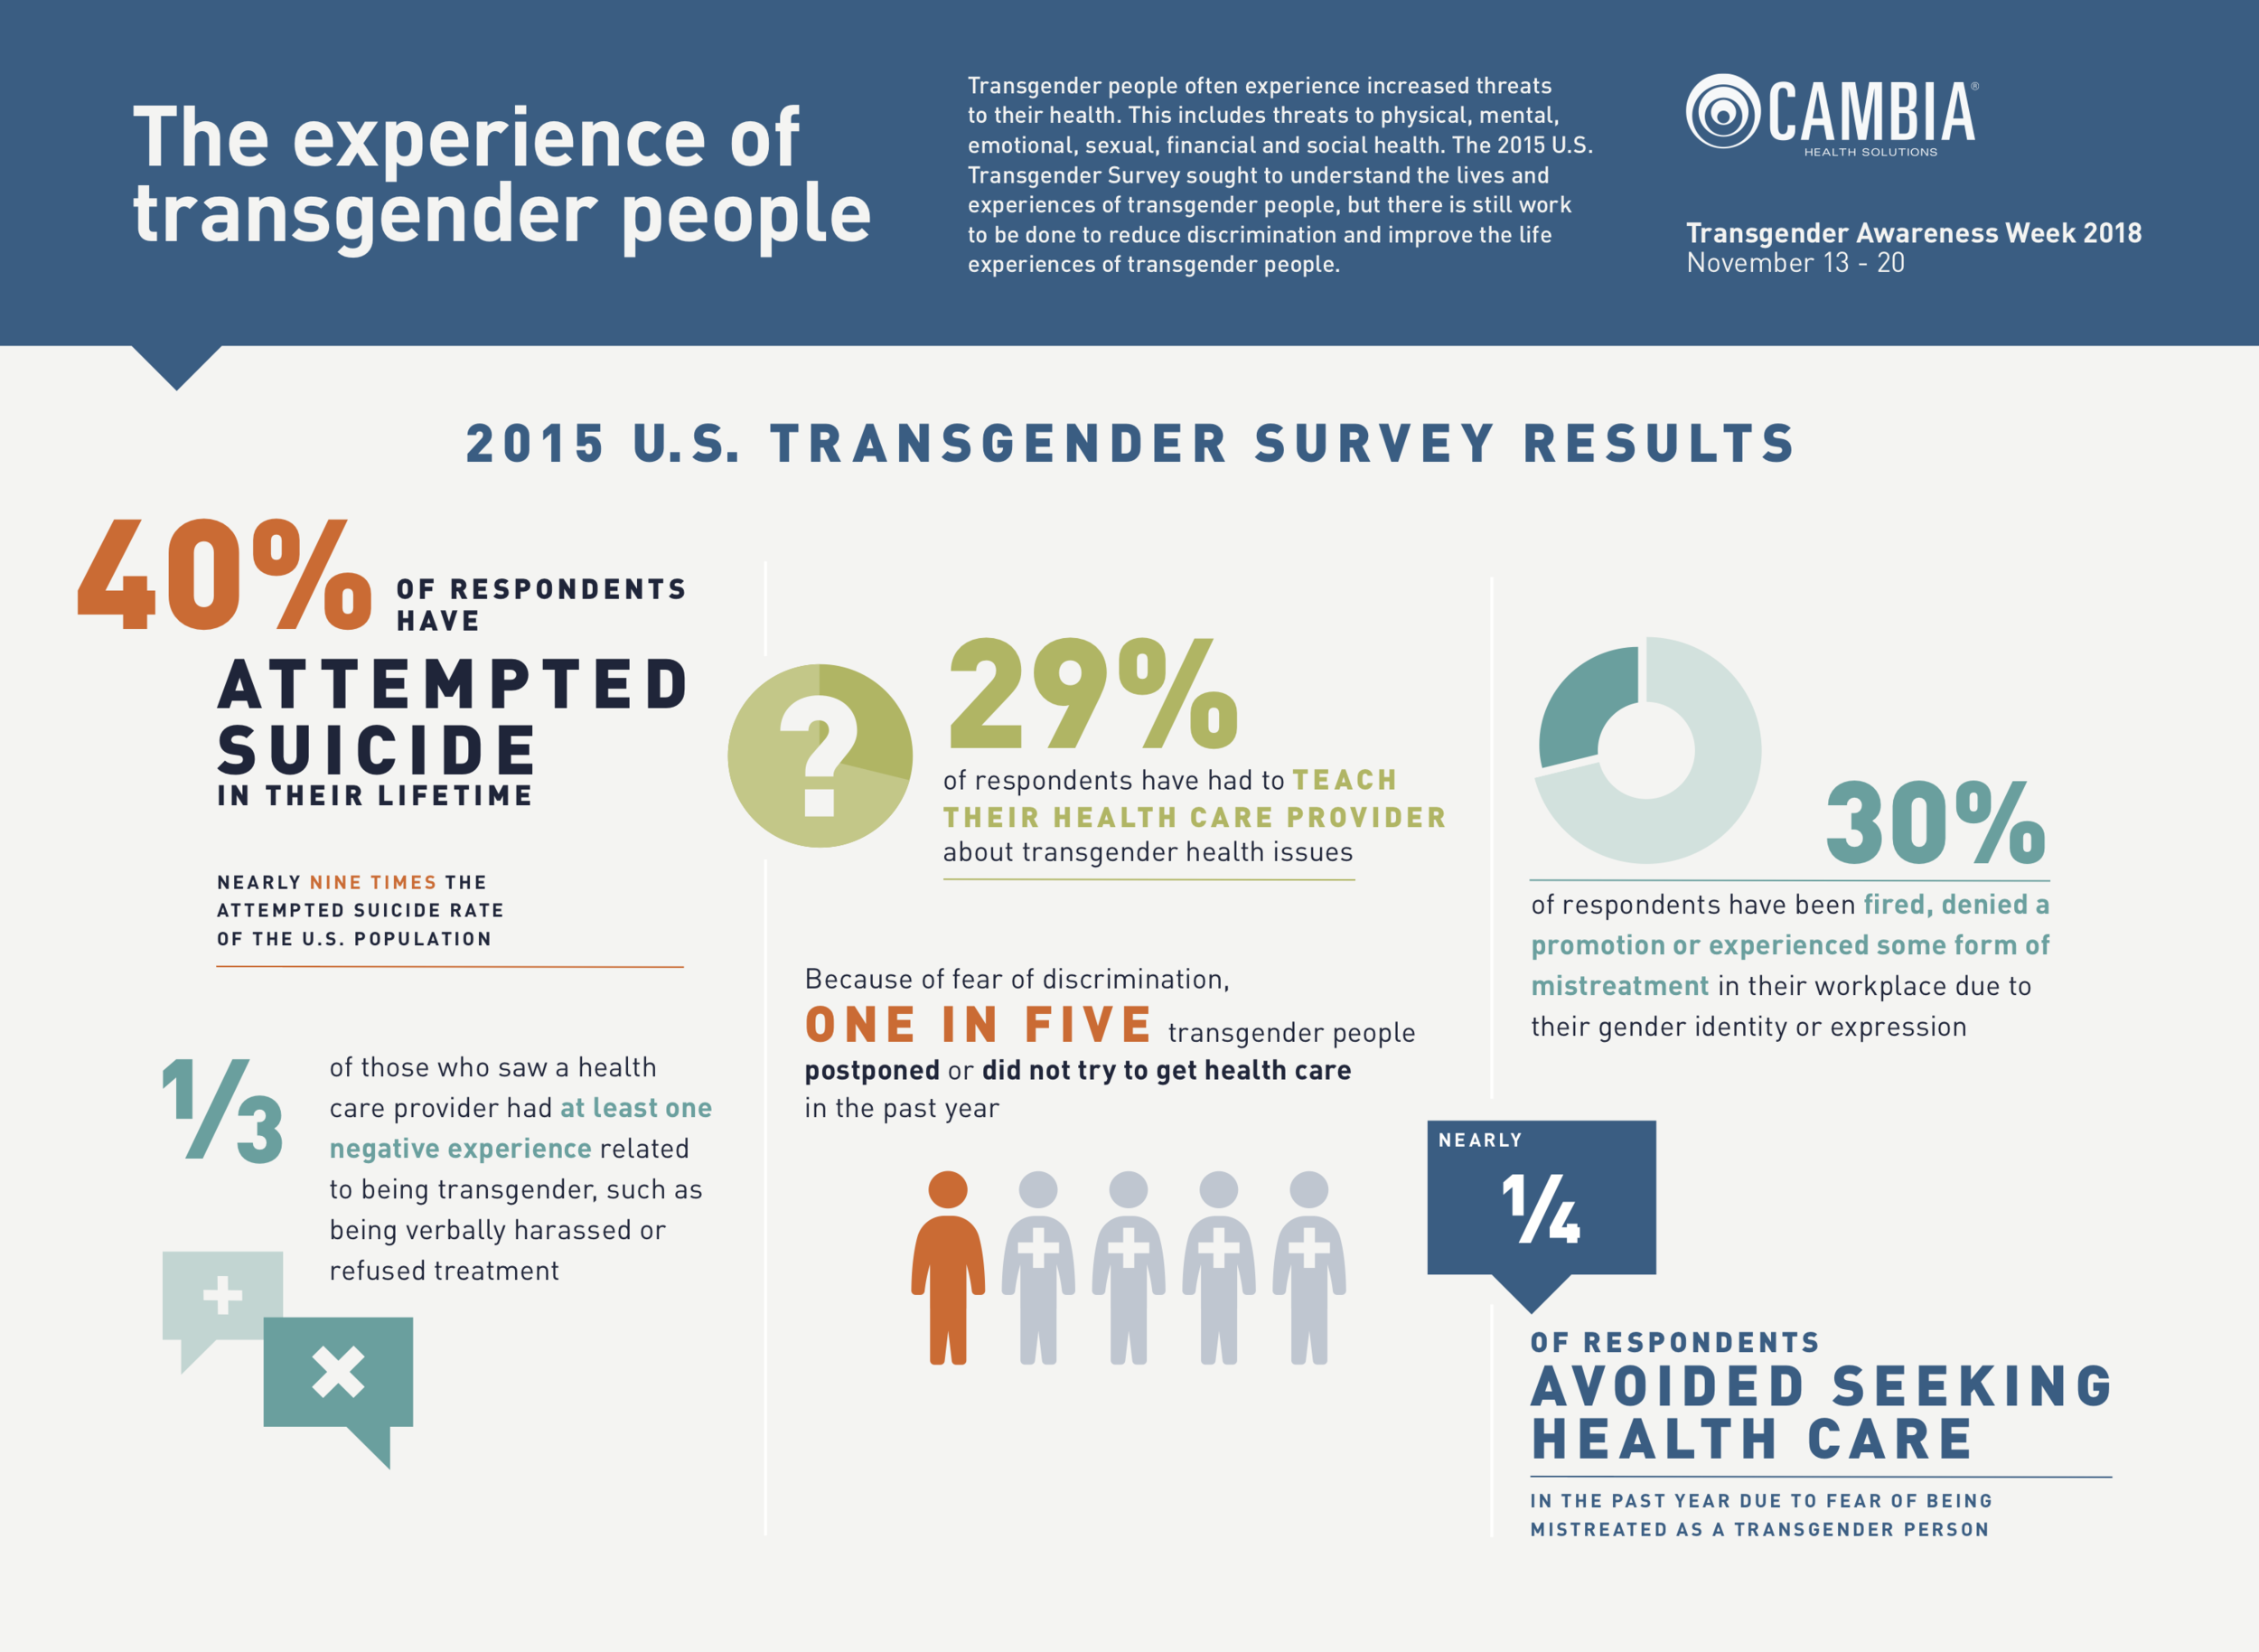 Transgender Awareness Week infographic commissioned by the LGBTQ employee resource group at Cambia. This infographic helps to spread awareness about the mental, social and physical risks that transgender people face in life, encouraging workplaces to reduce discrimination. Written for internal audiences. To learn more about Cambia Health Solutions,  click here .